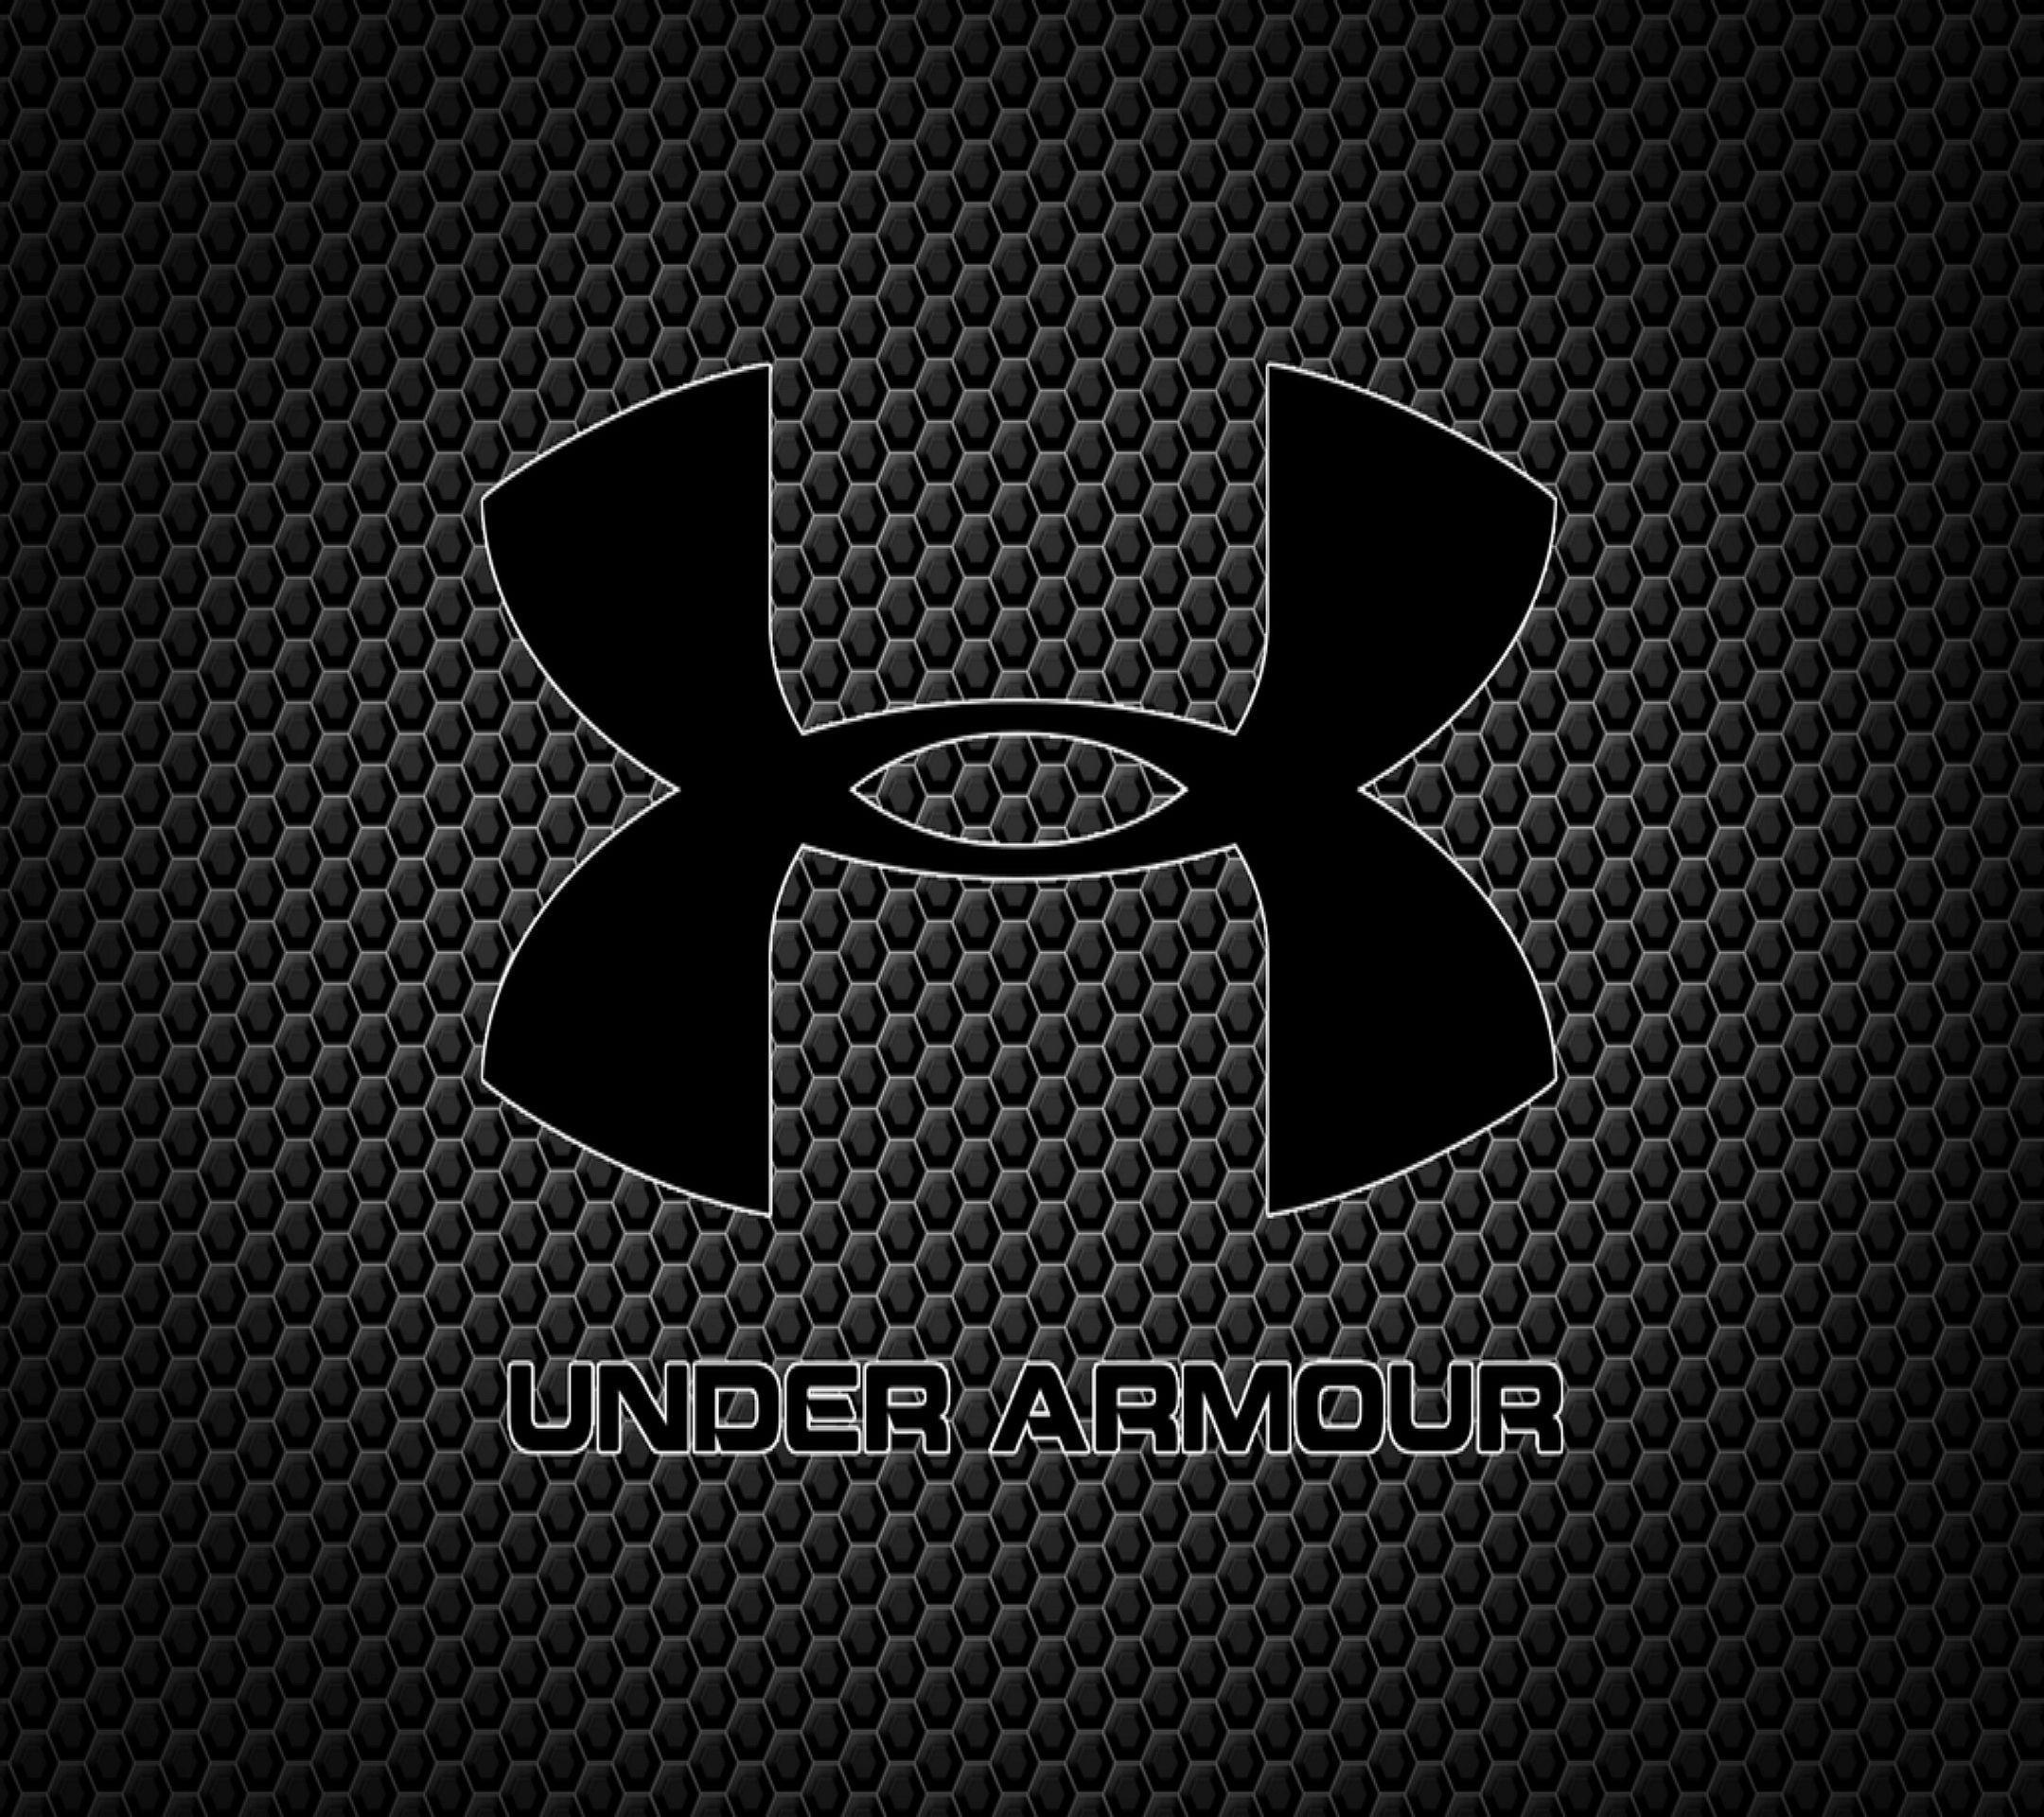 under armour wallpapers for facebook - photo #4